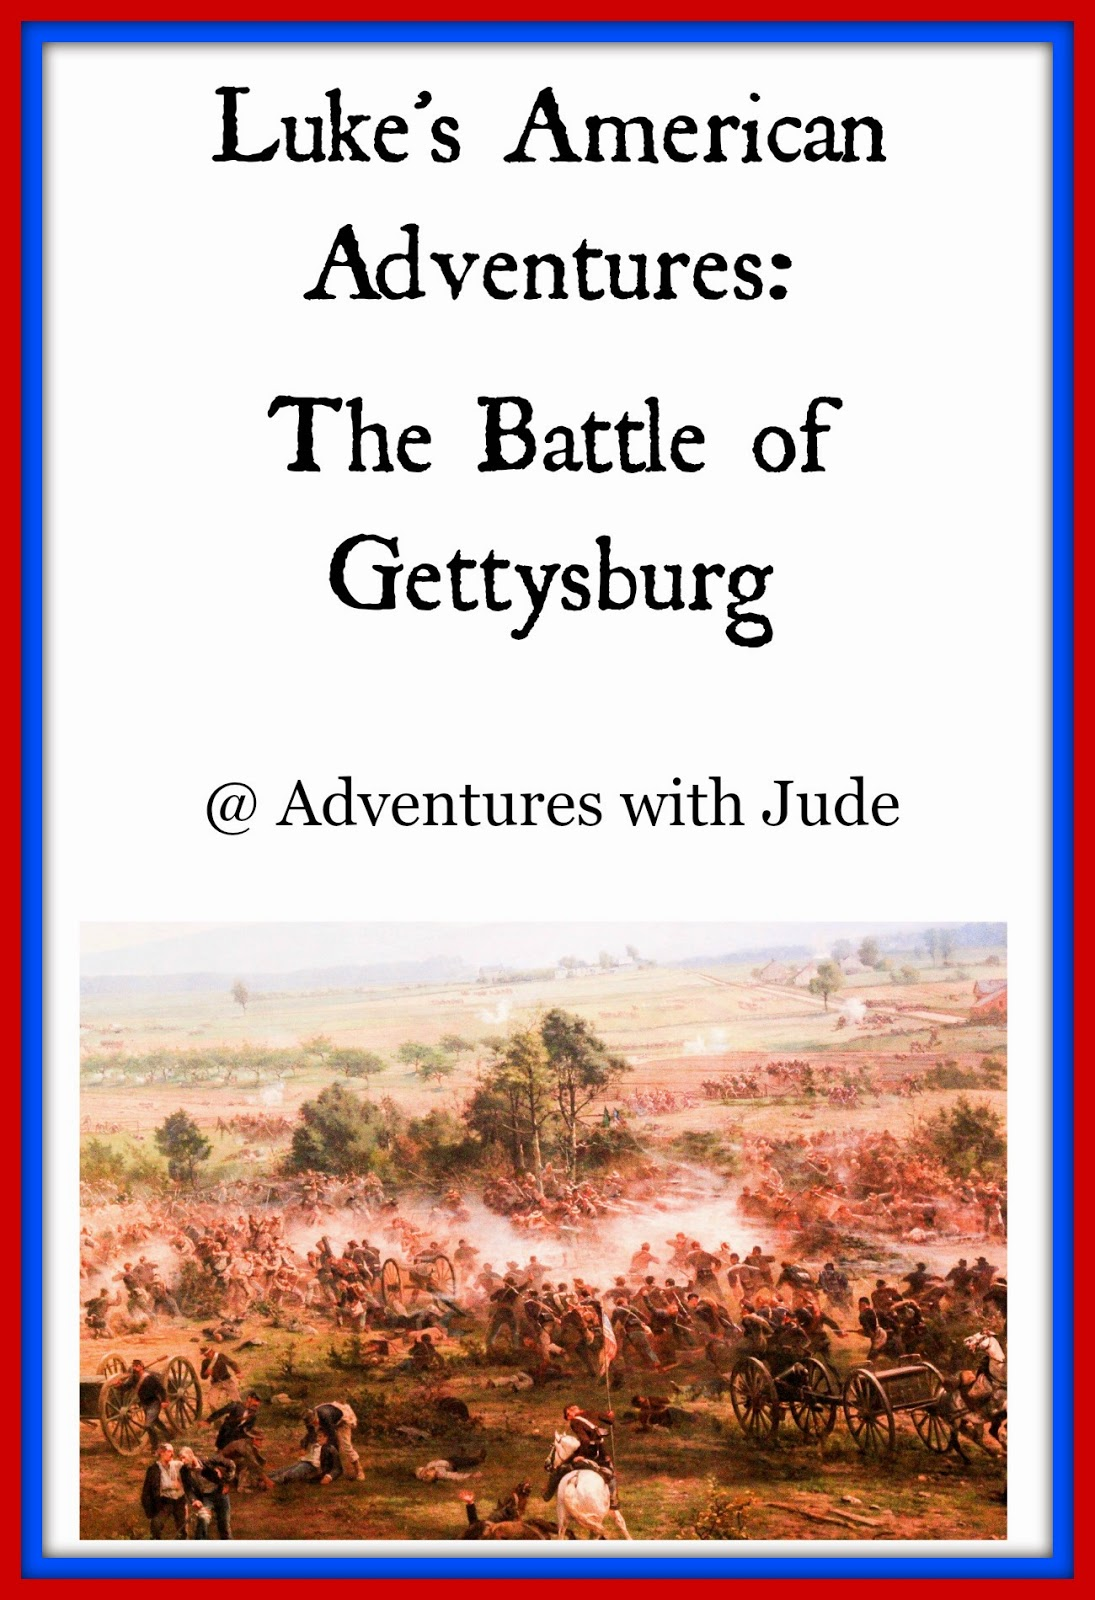 Luke's American Adventures: The Battle of Gettysburg